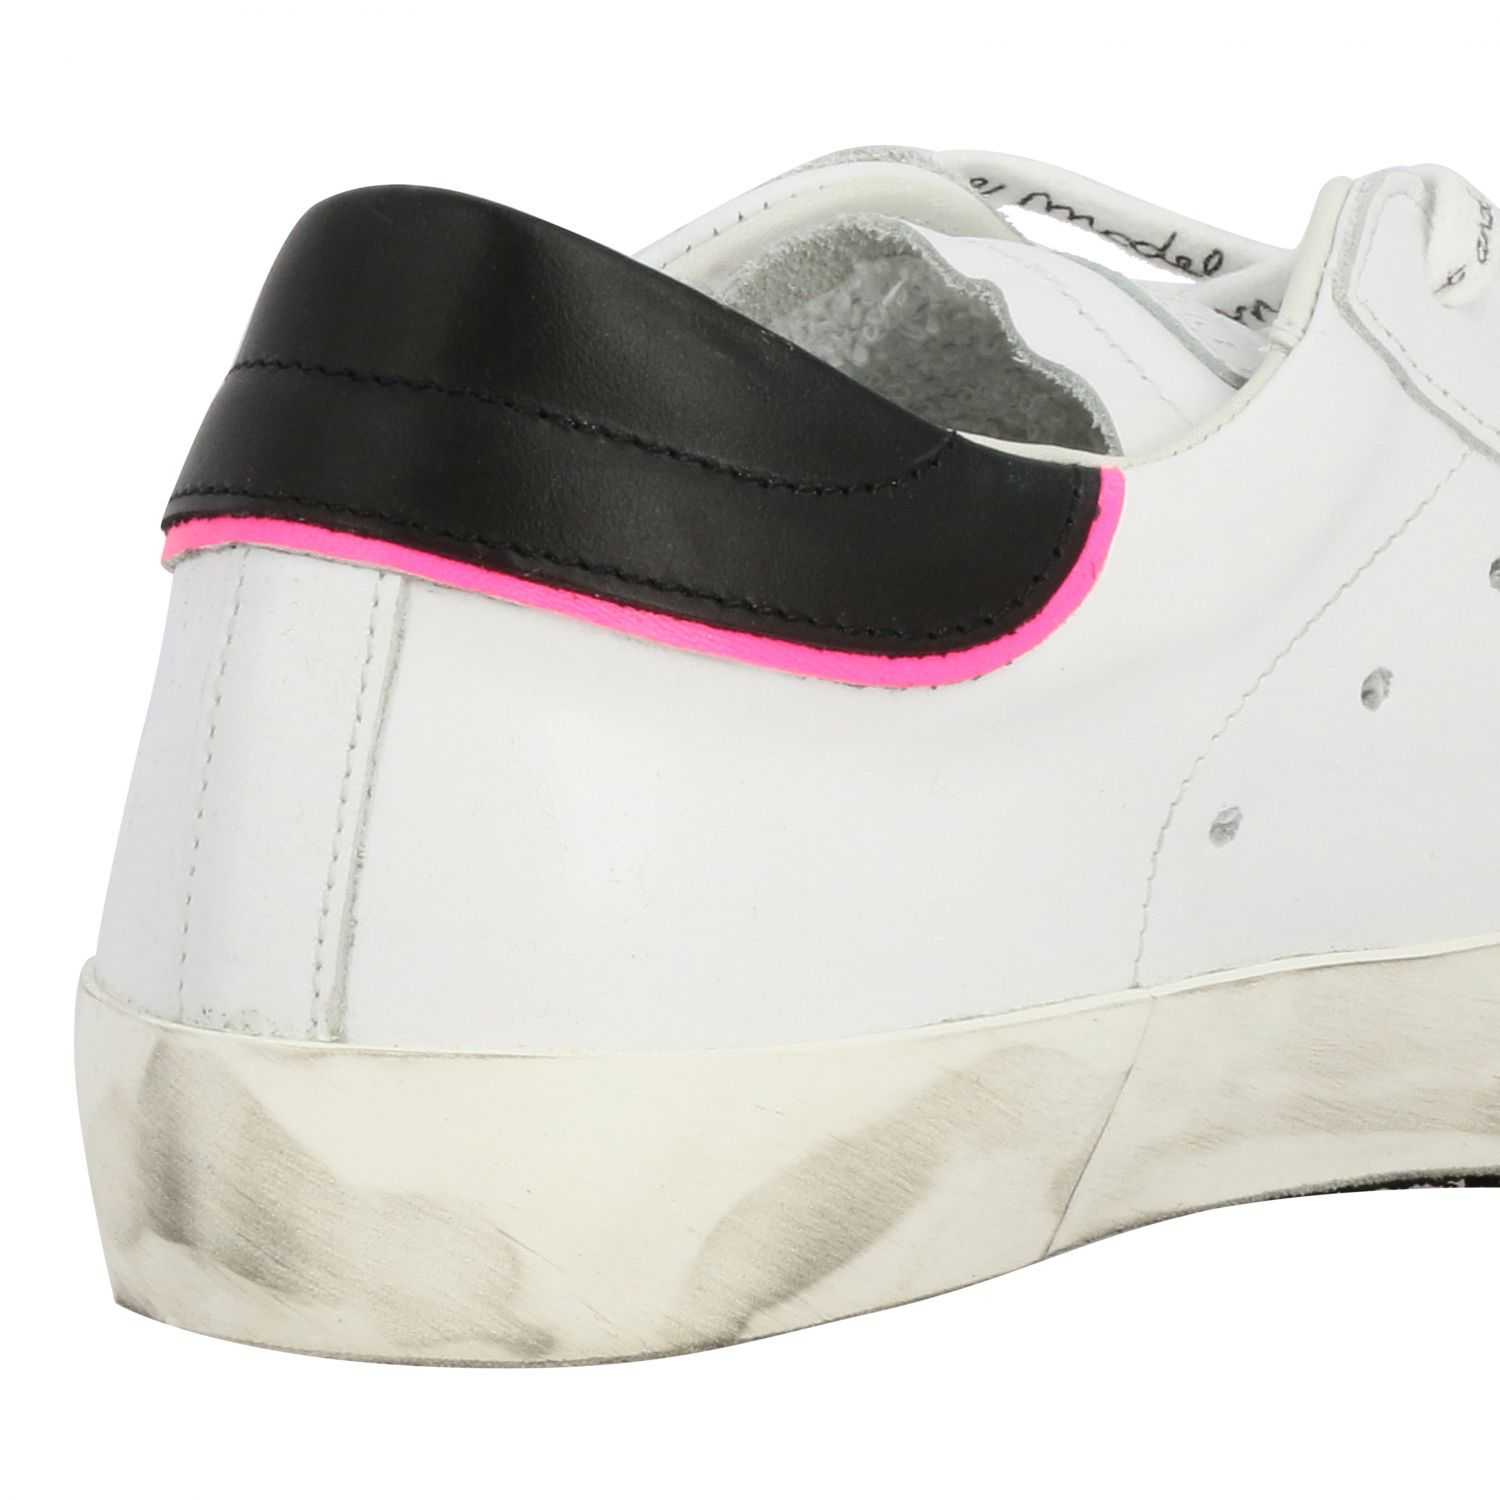 Sneakers women Philippe Model white 5